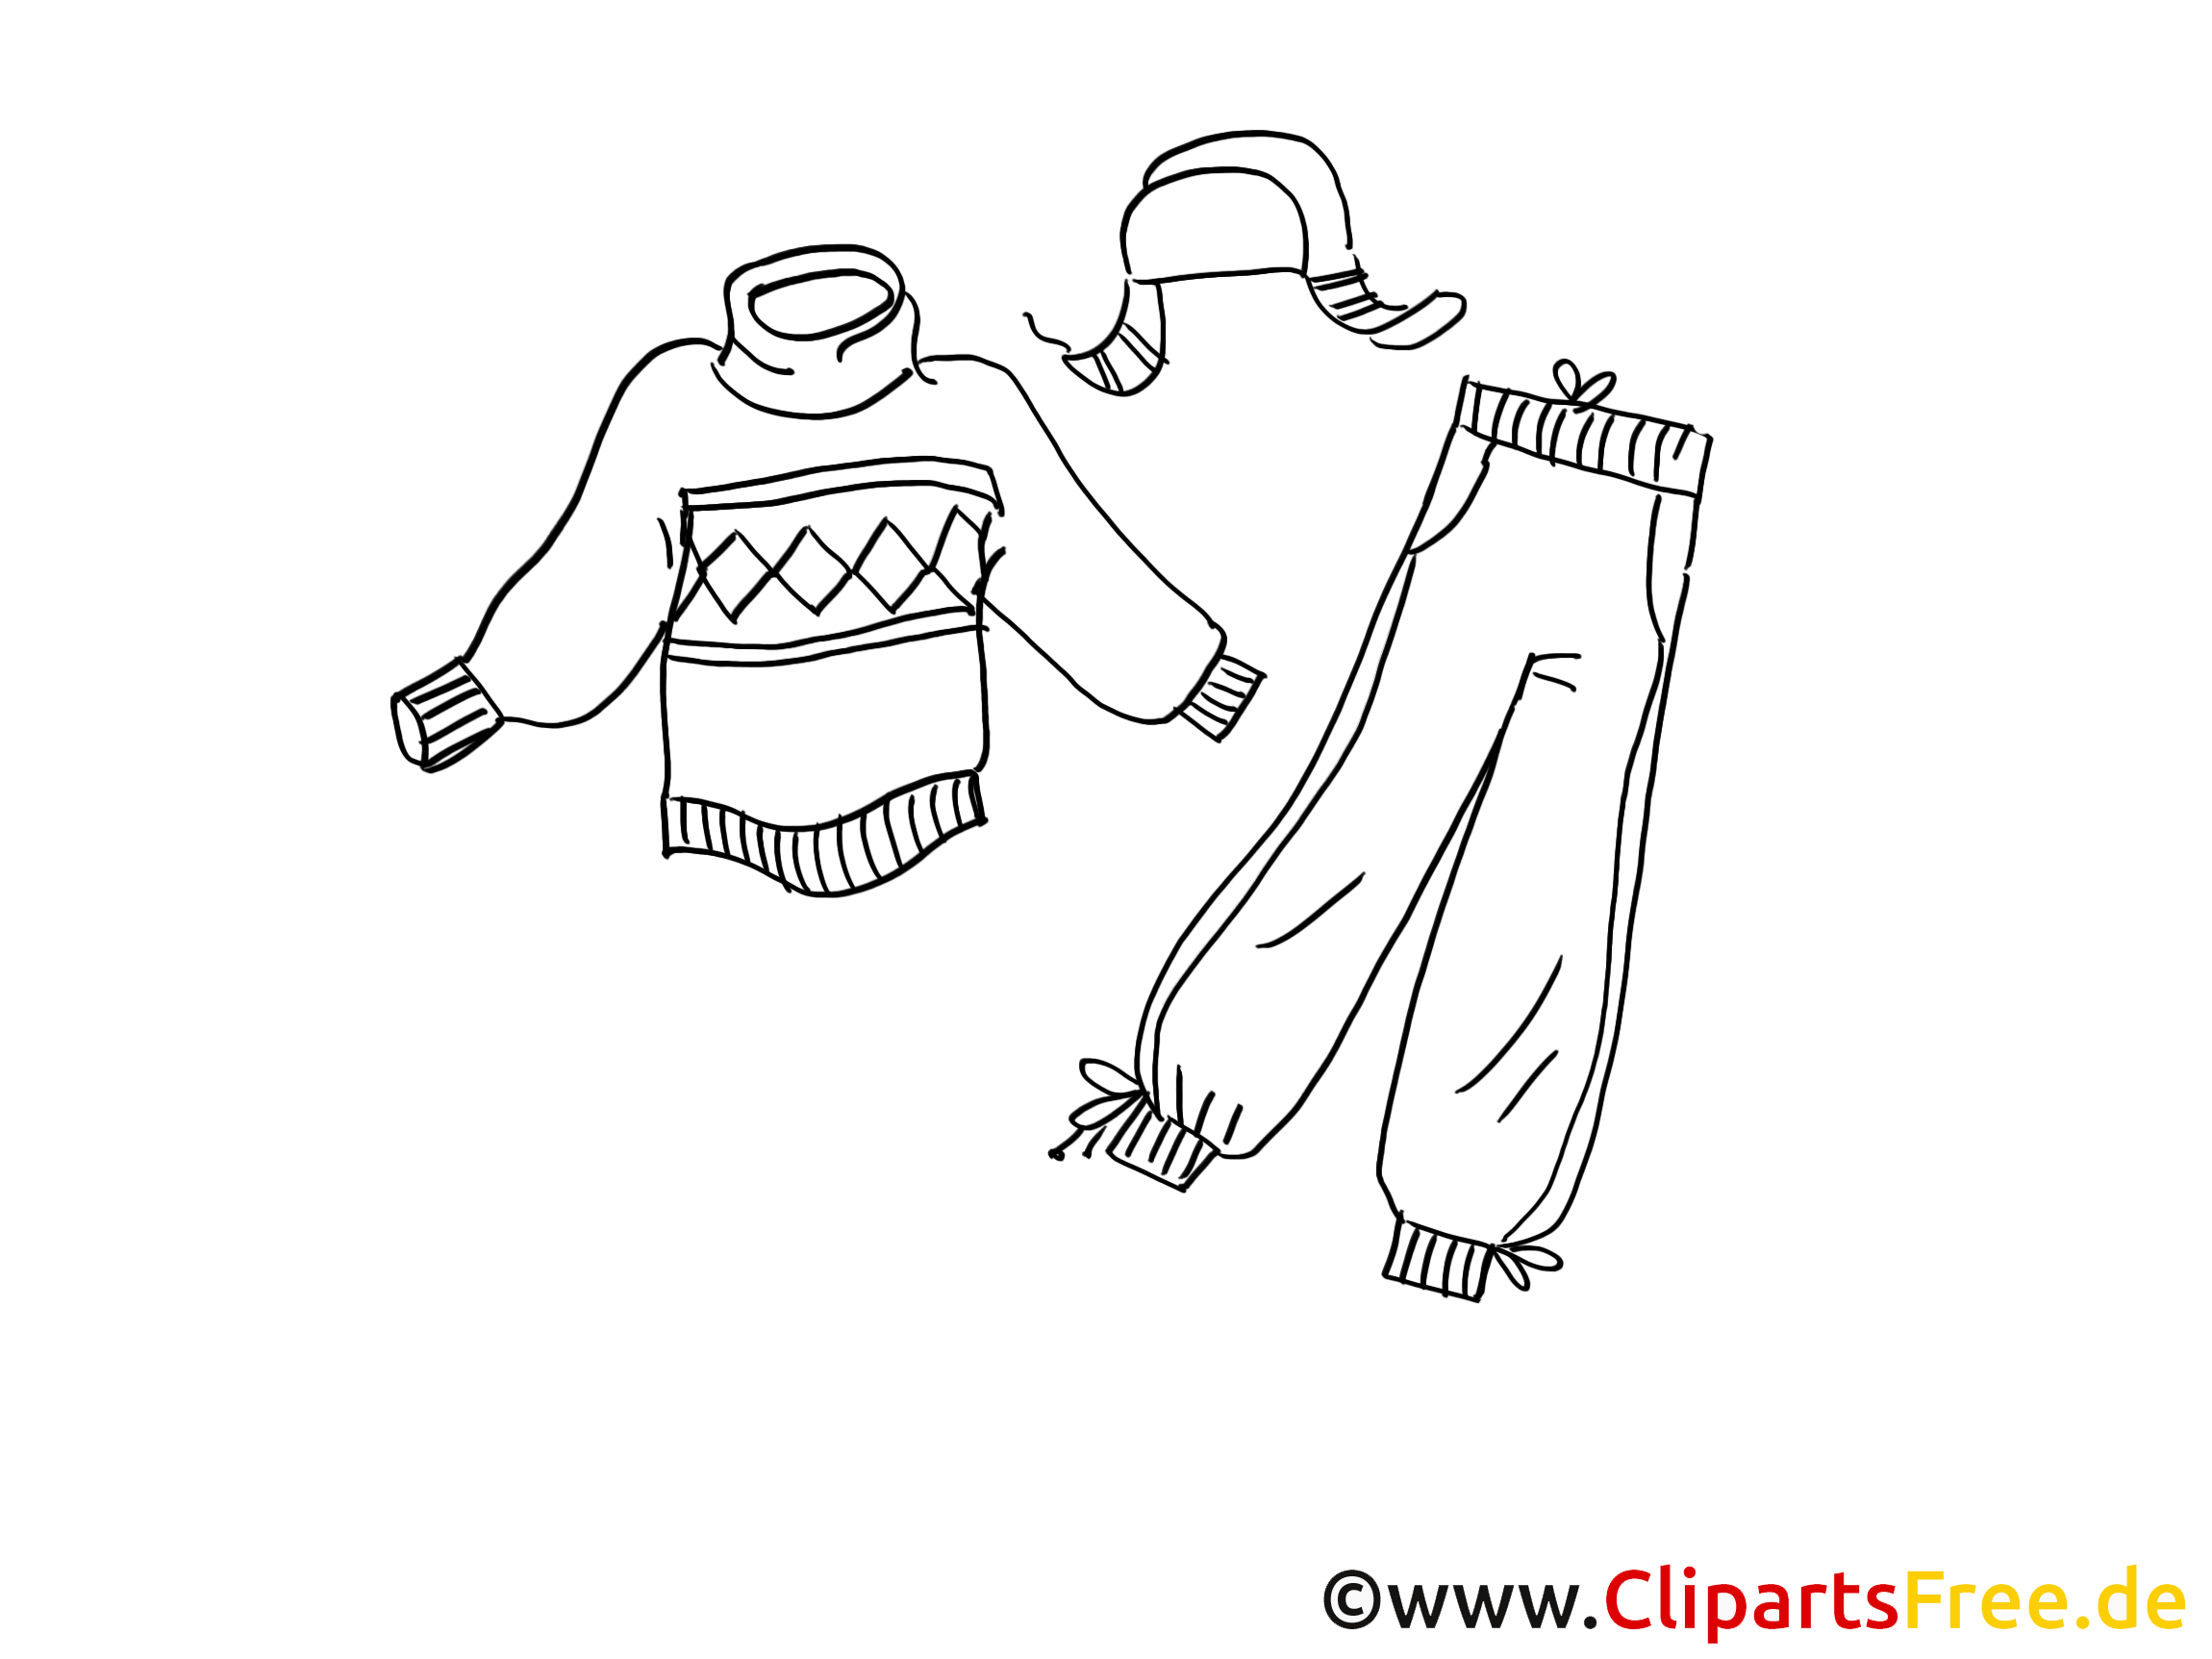 Clipart mode gratuit clip royalty free stock Vêtements images à imprimer clipart gratuit - Mode dessin, picture ... clip royalty free stock